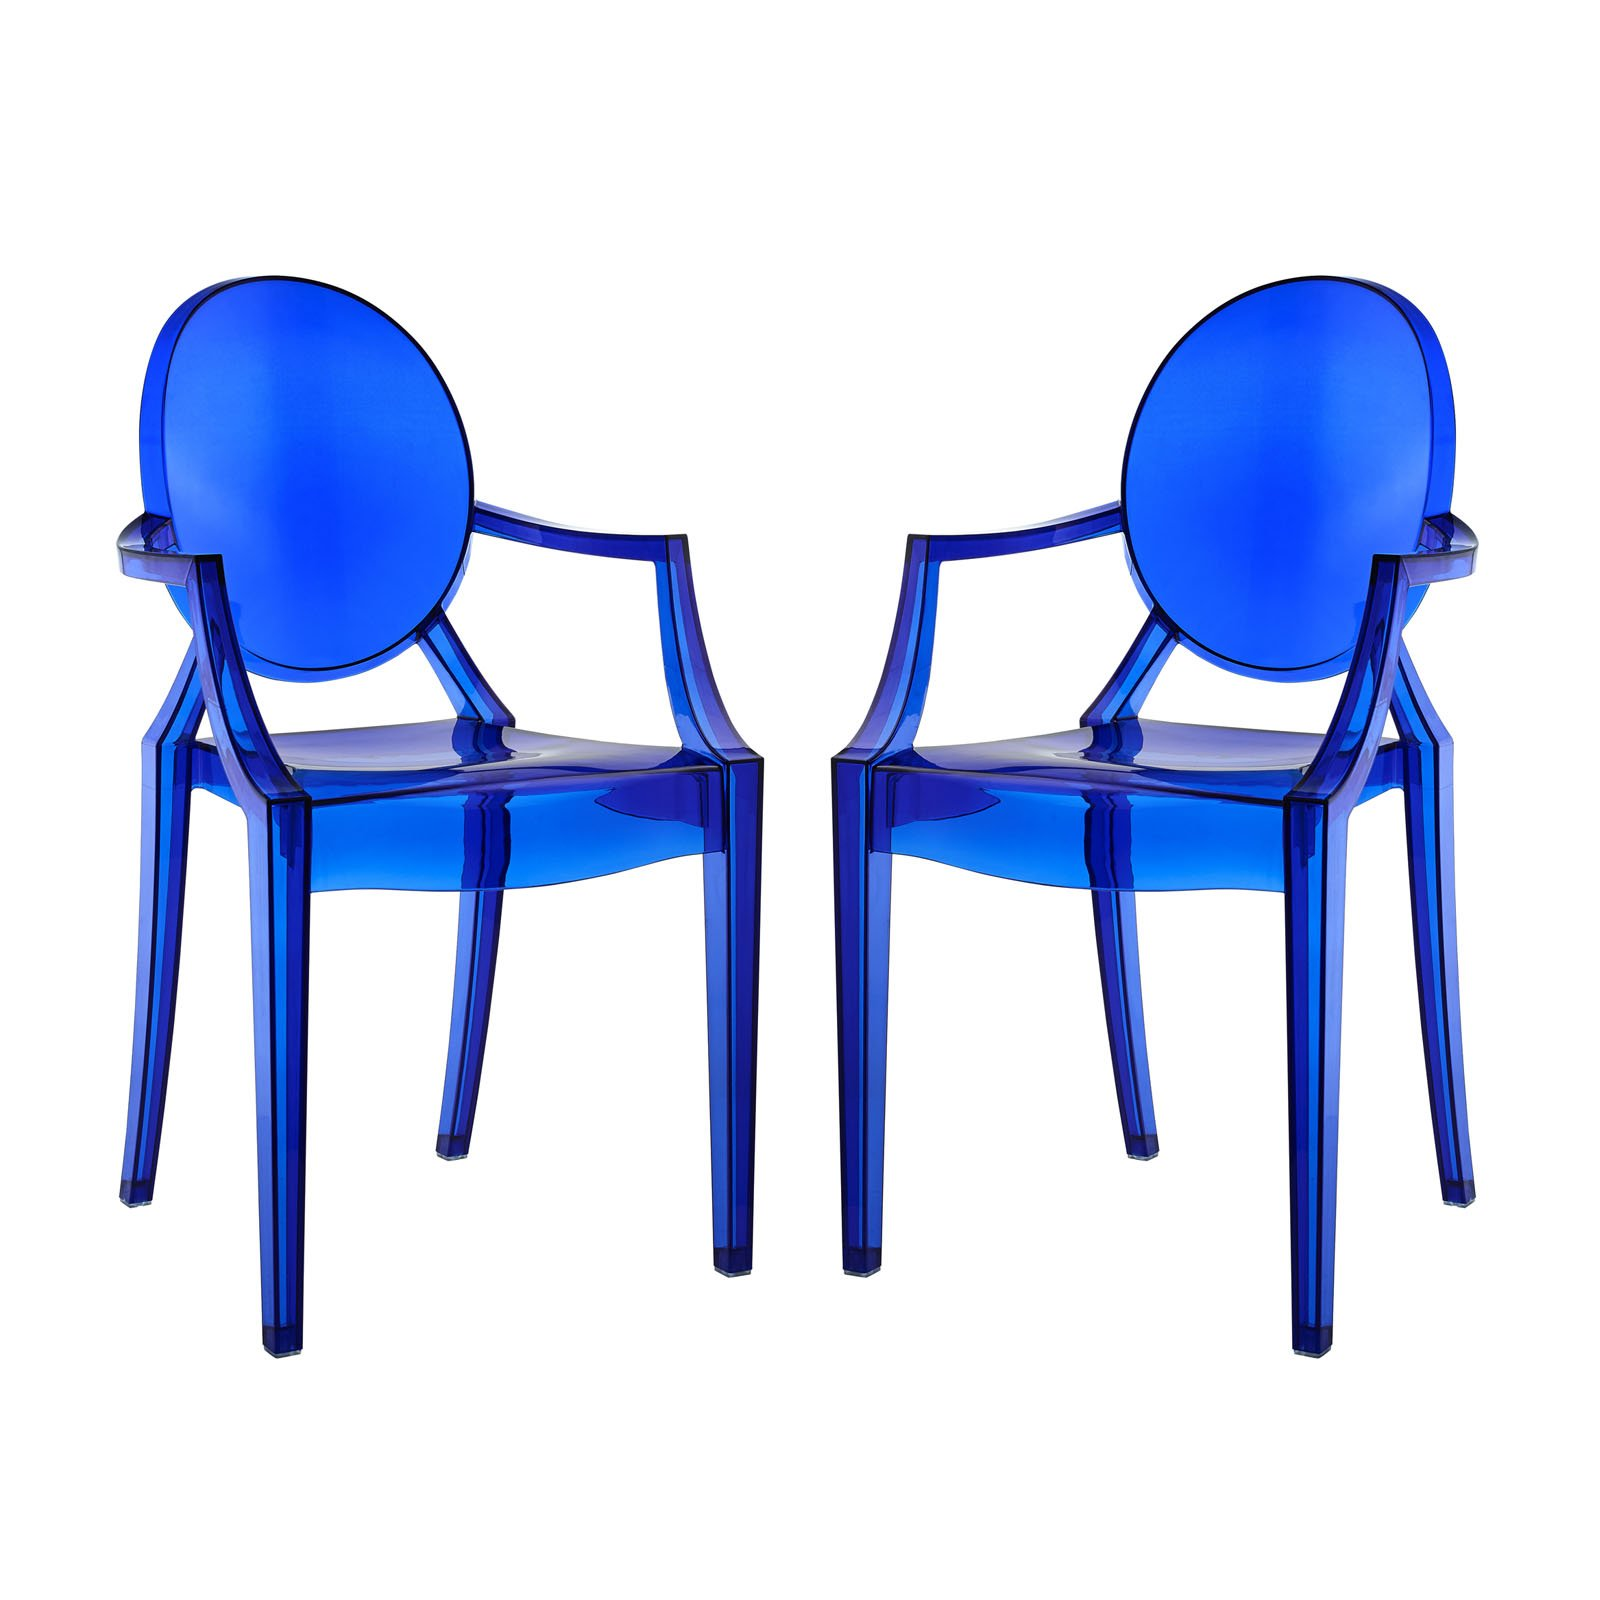 Modway Casper Modern Acrylic Dining Armchairs in Blue - Set of 2 by Modway